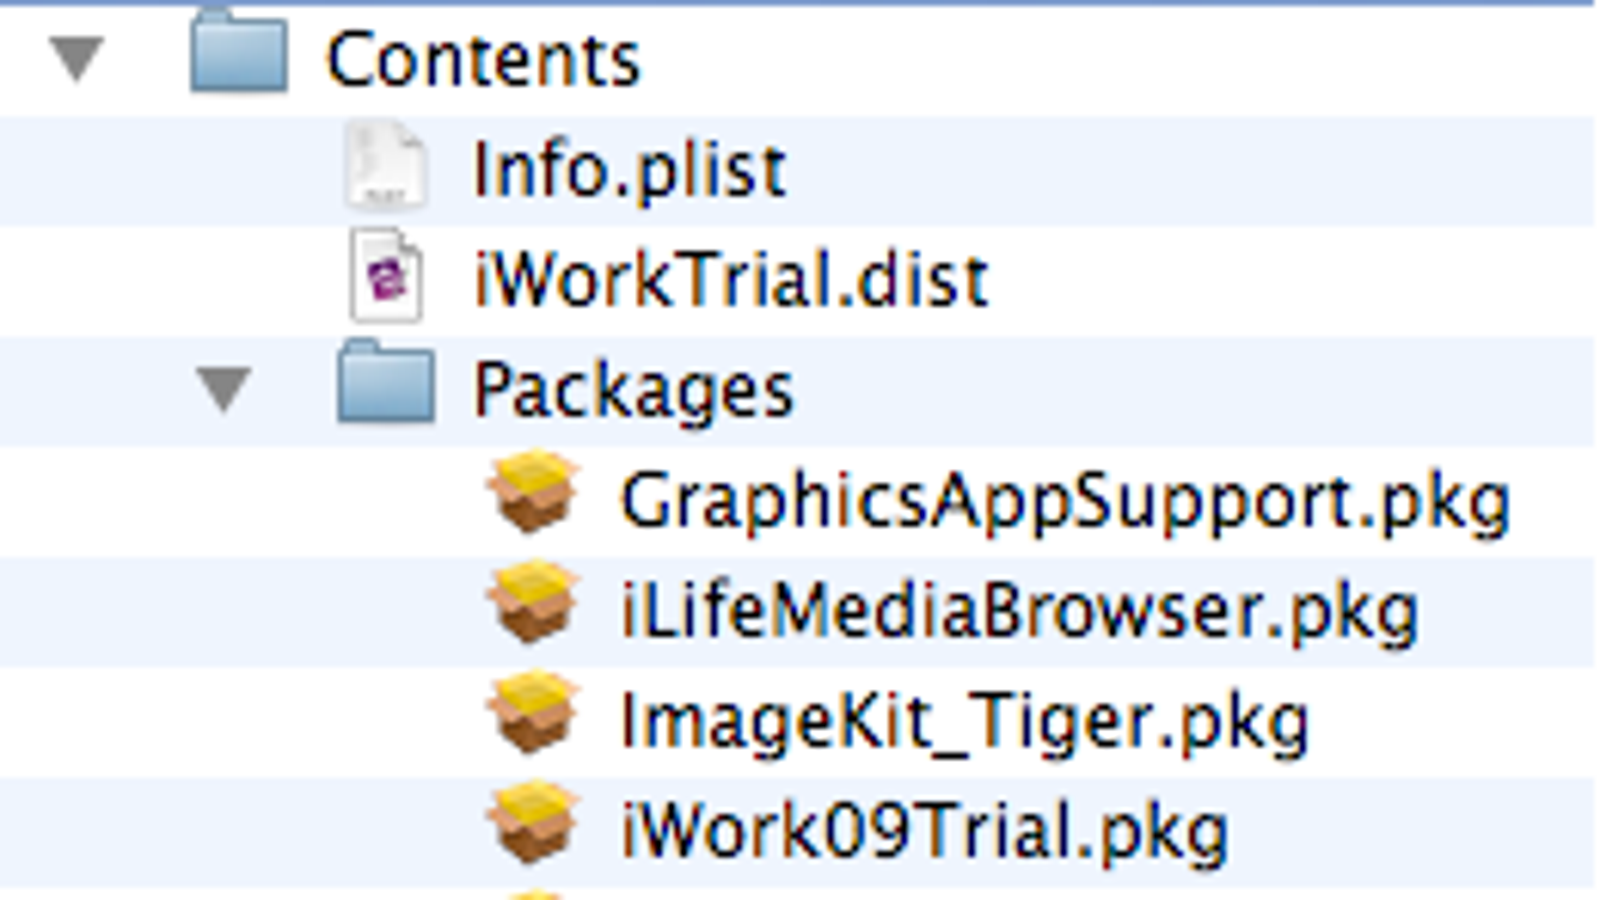 Torrented Copies of iWork '09 Come Laced With a Nasty OS X